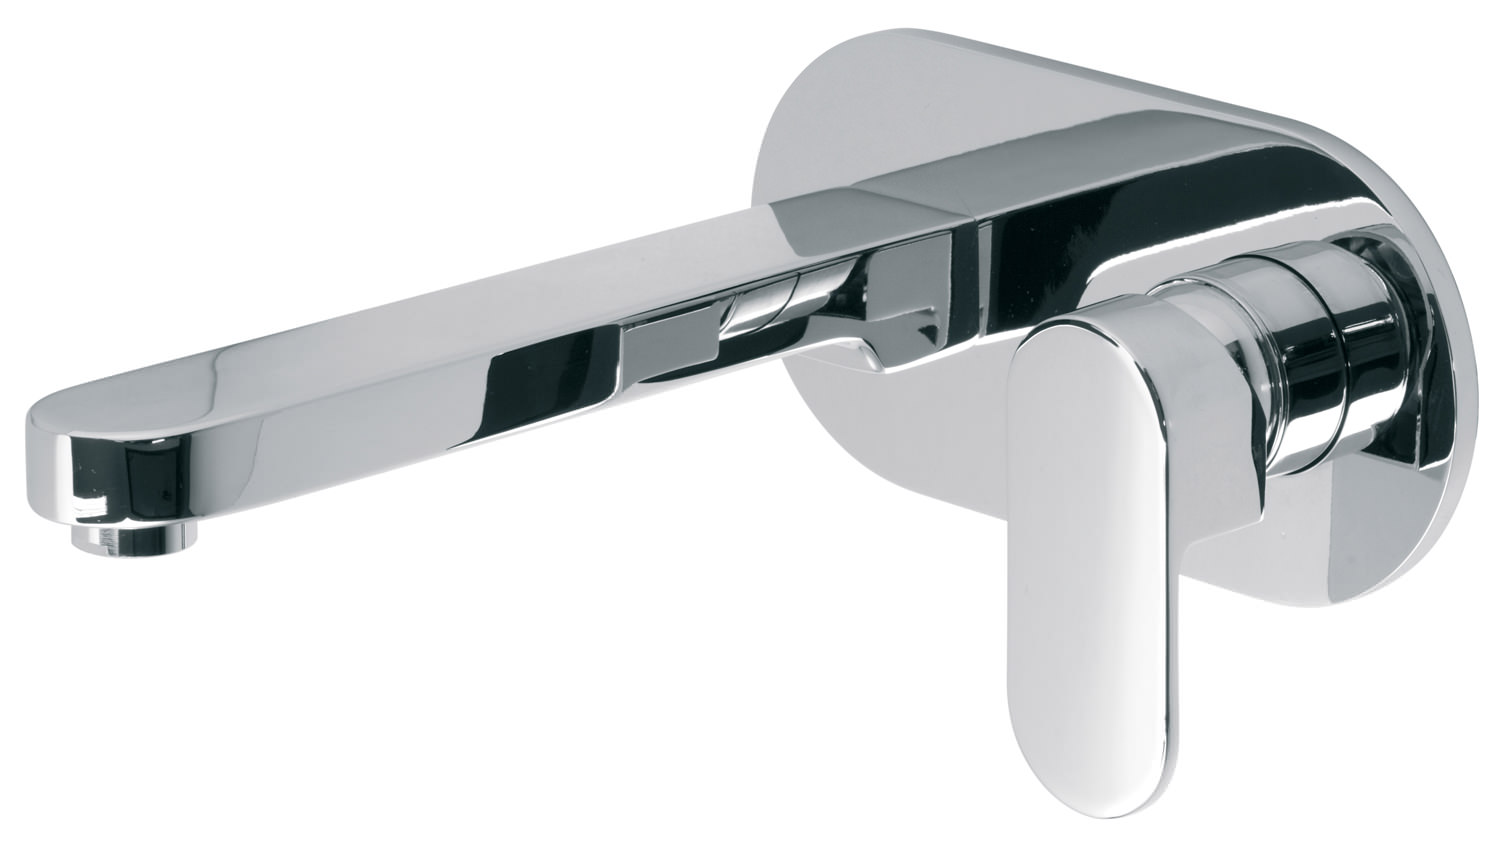 Vado Life Sink Mixer With Swivel Spout: Vado Life Wall Mounted 2 Hole Basin Mixer Tap 200mm